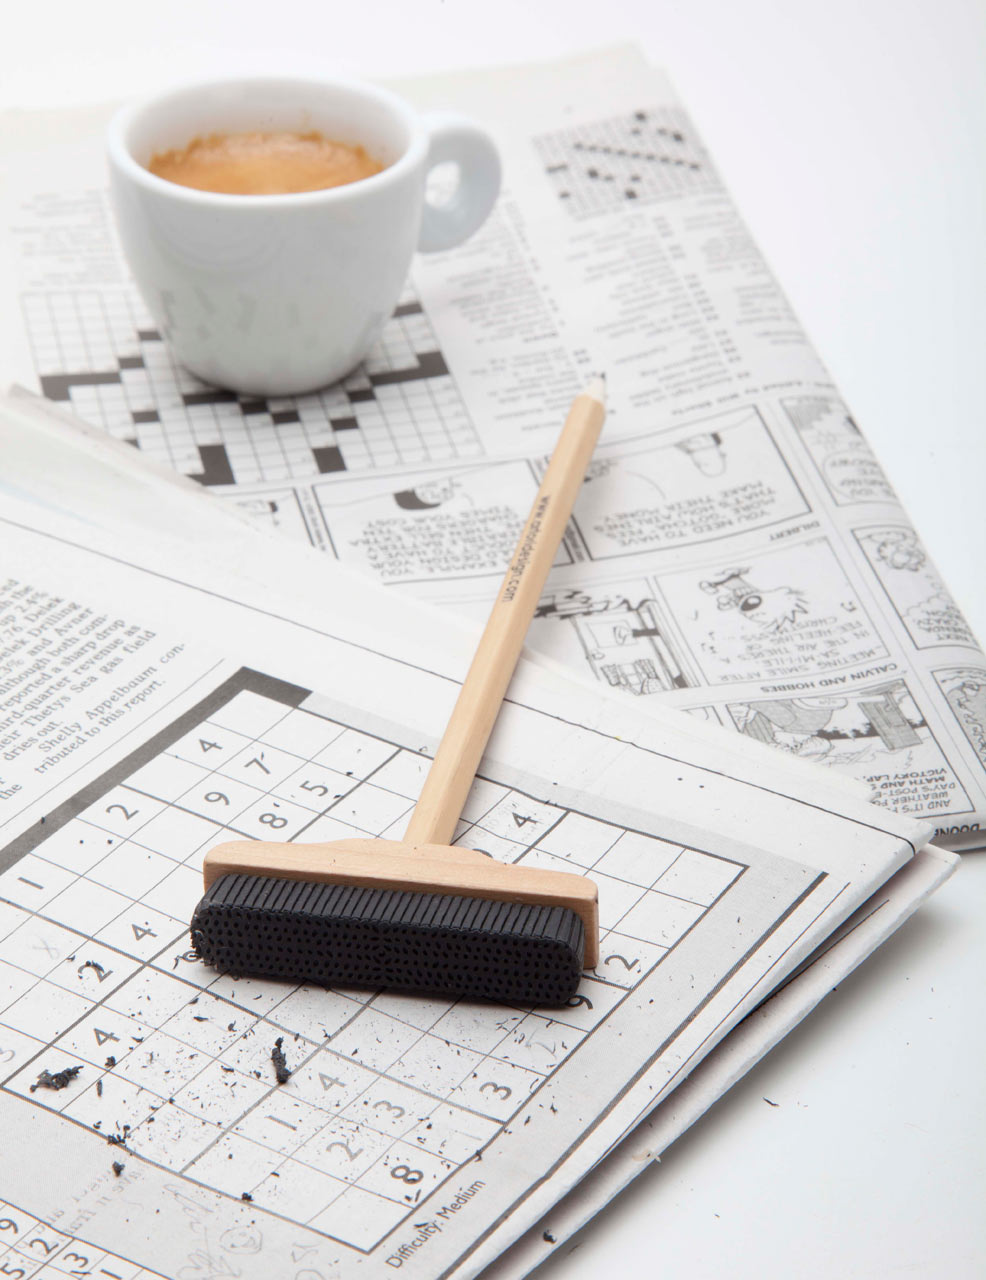 Artori-Design-1-Pencil-Broom